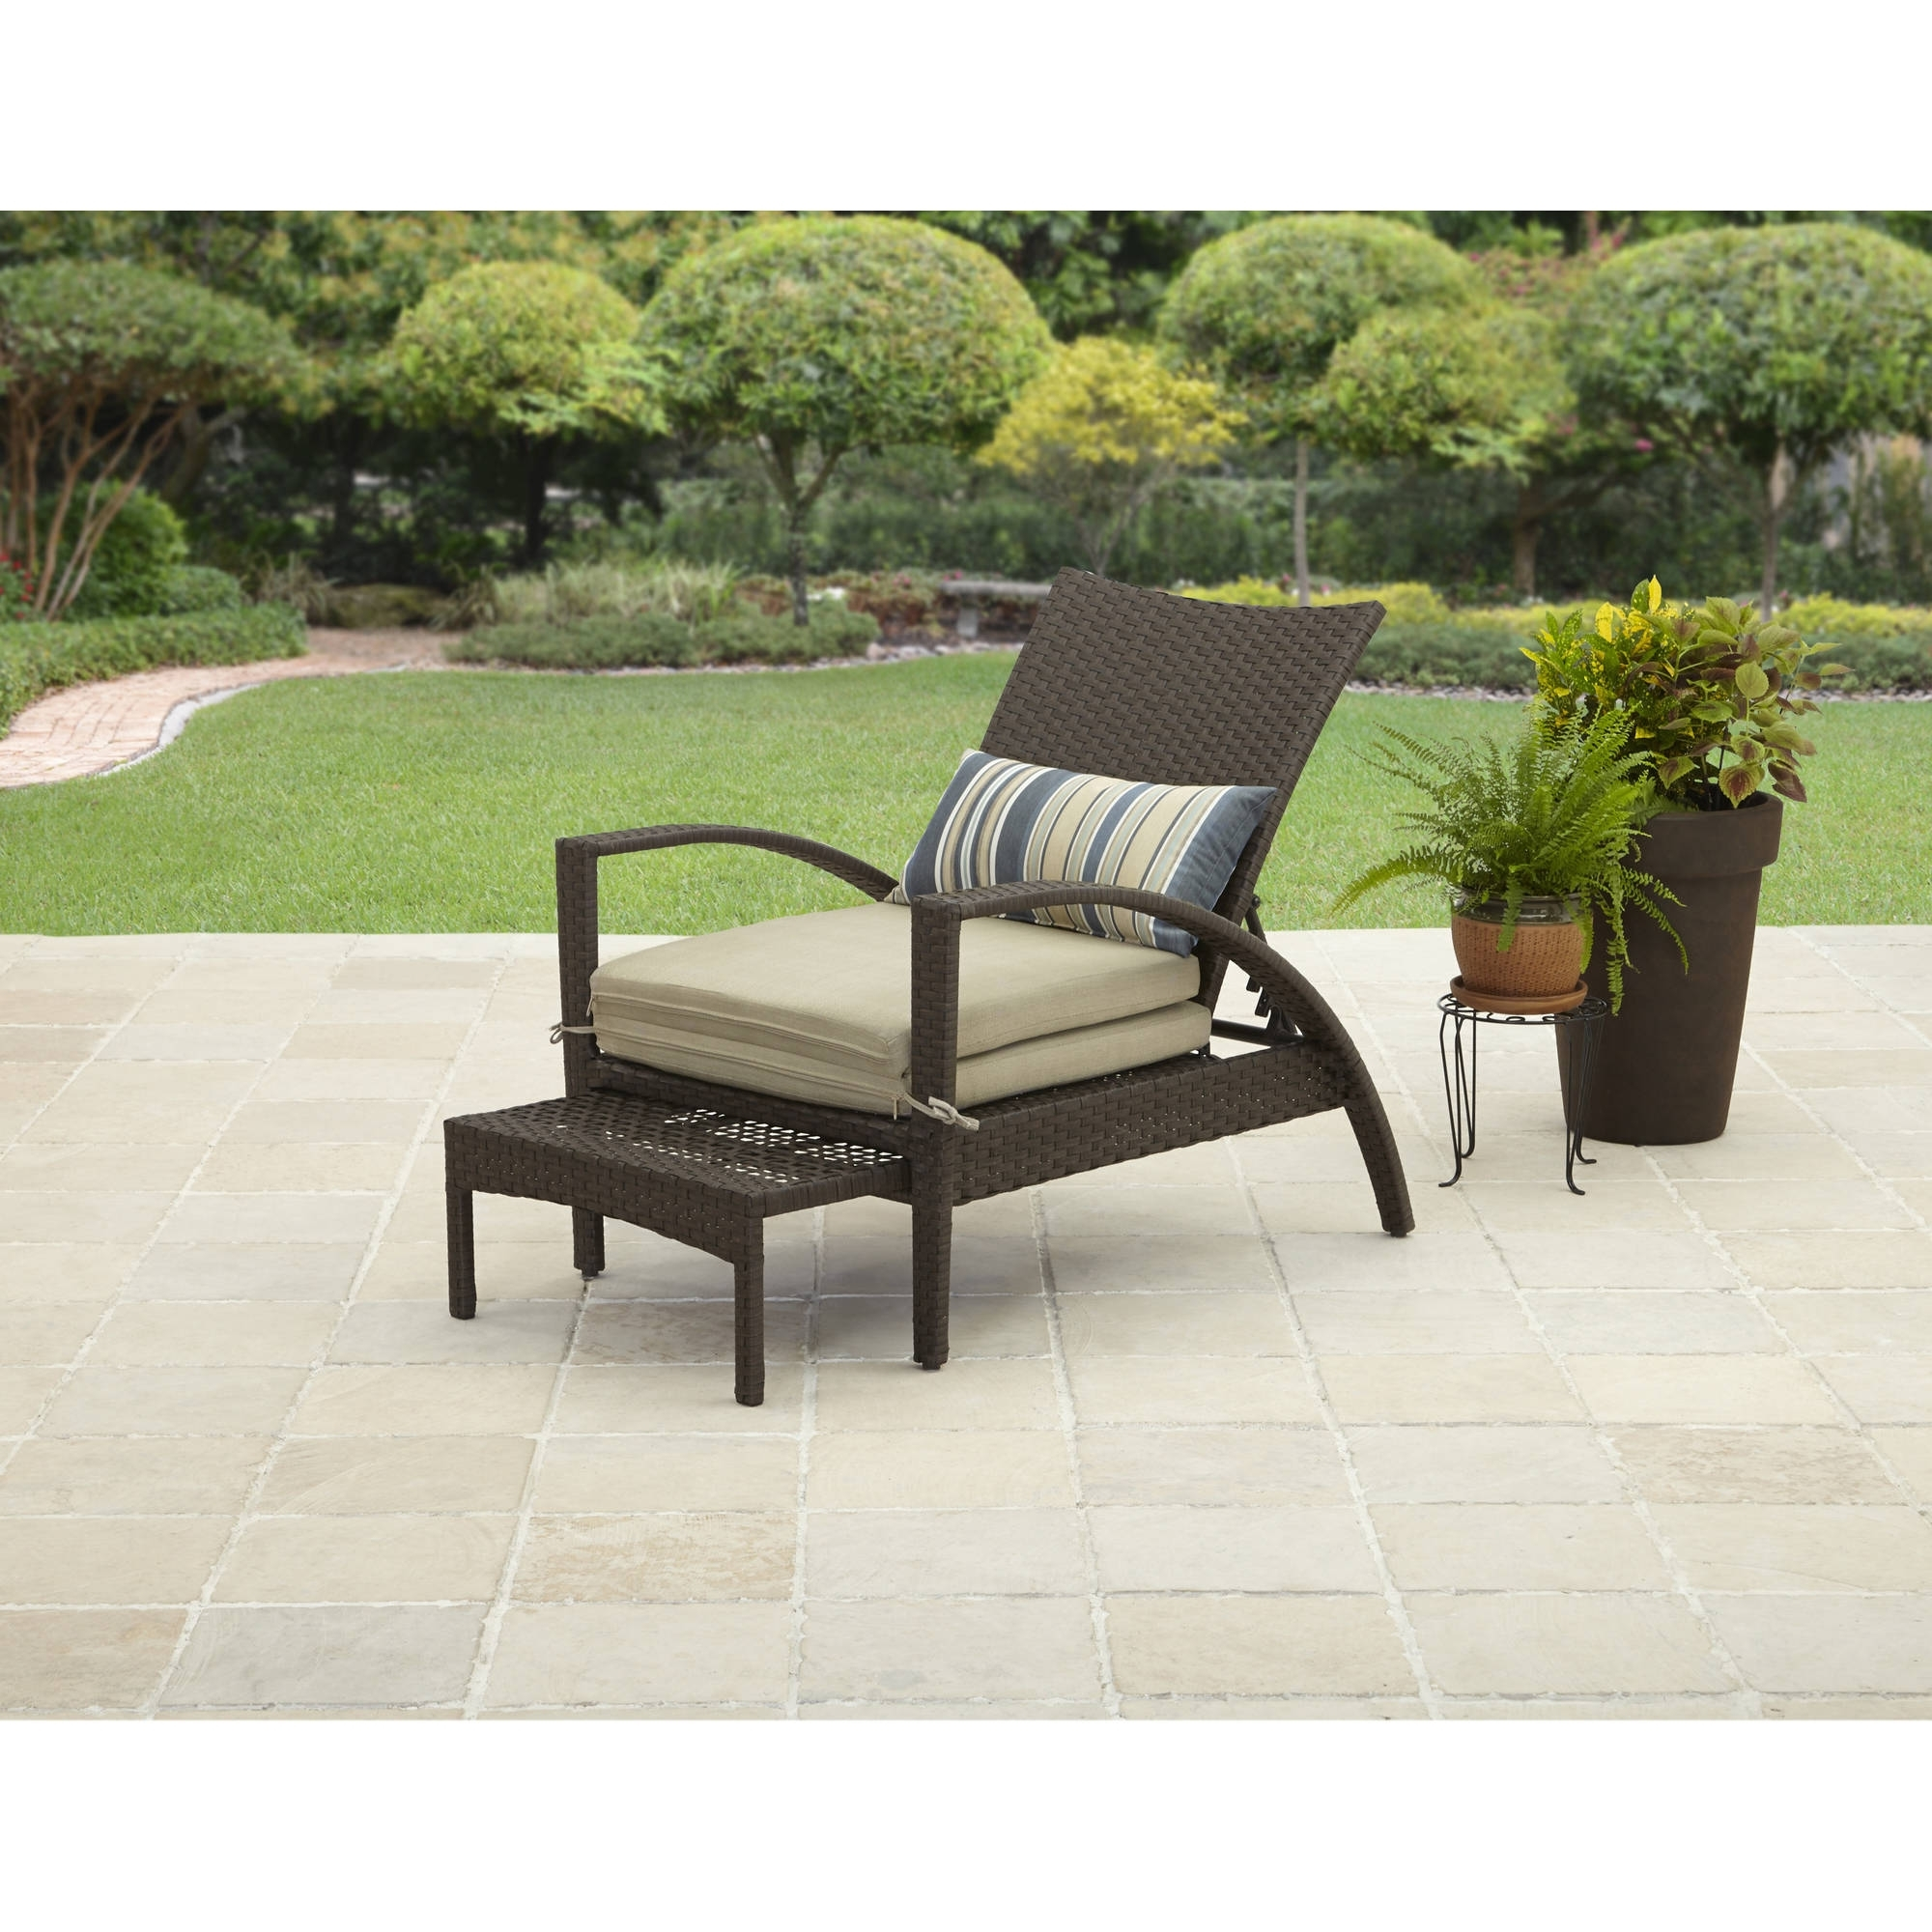 Outdoor Chaise Lounge Chairs At Walmart Within 2018 Better Homes And Gardens Avila Beach Pull Out Chaise – Walmart (View 14 of 15)